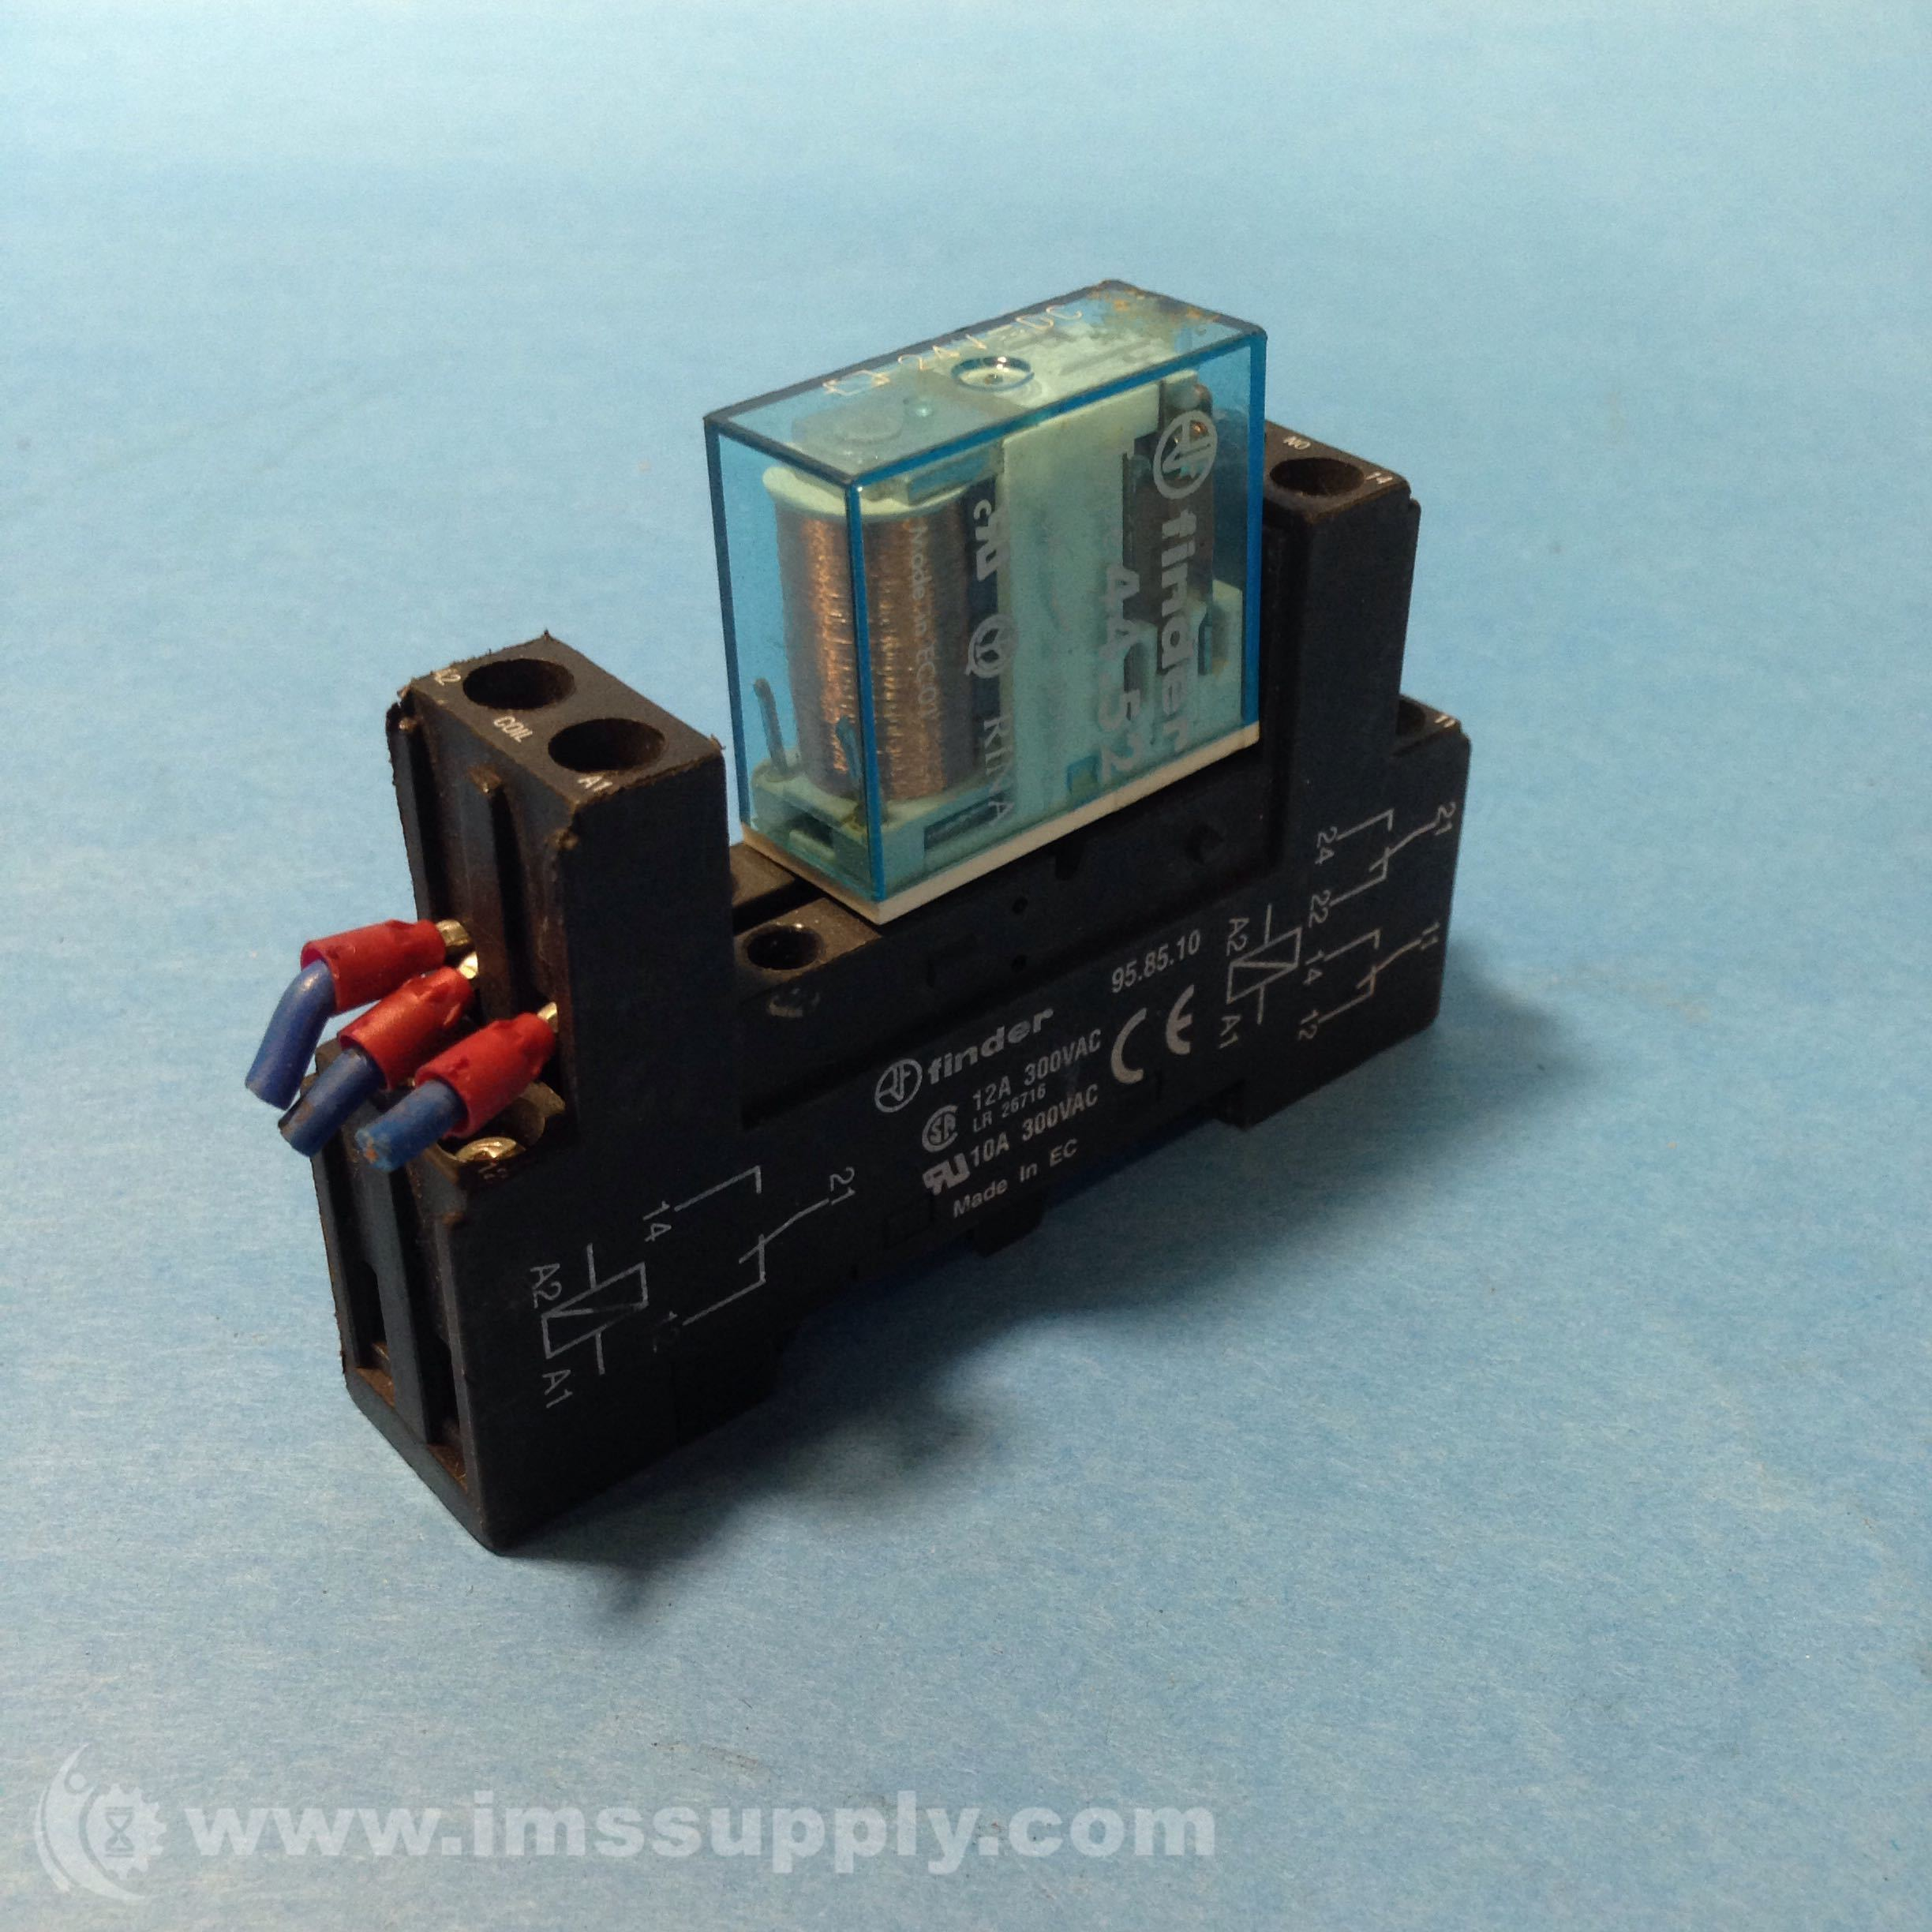 Finder 958510 Relay Socket Din Rail 40 41 44 10amp Ims Supply Solid State